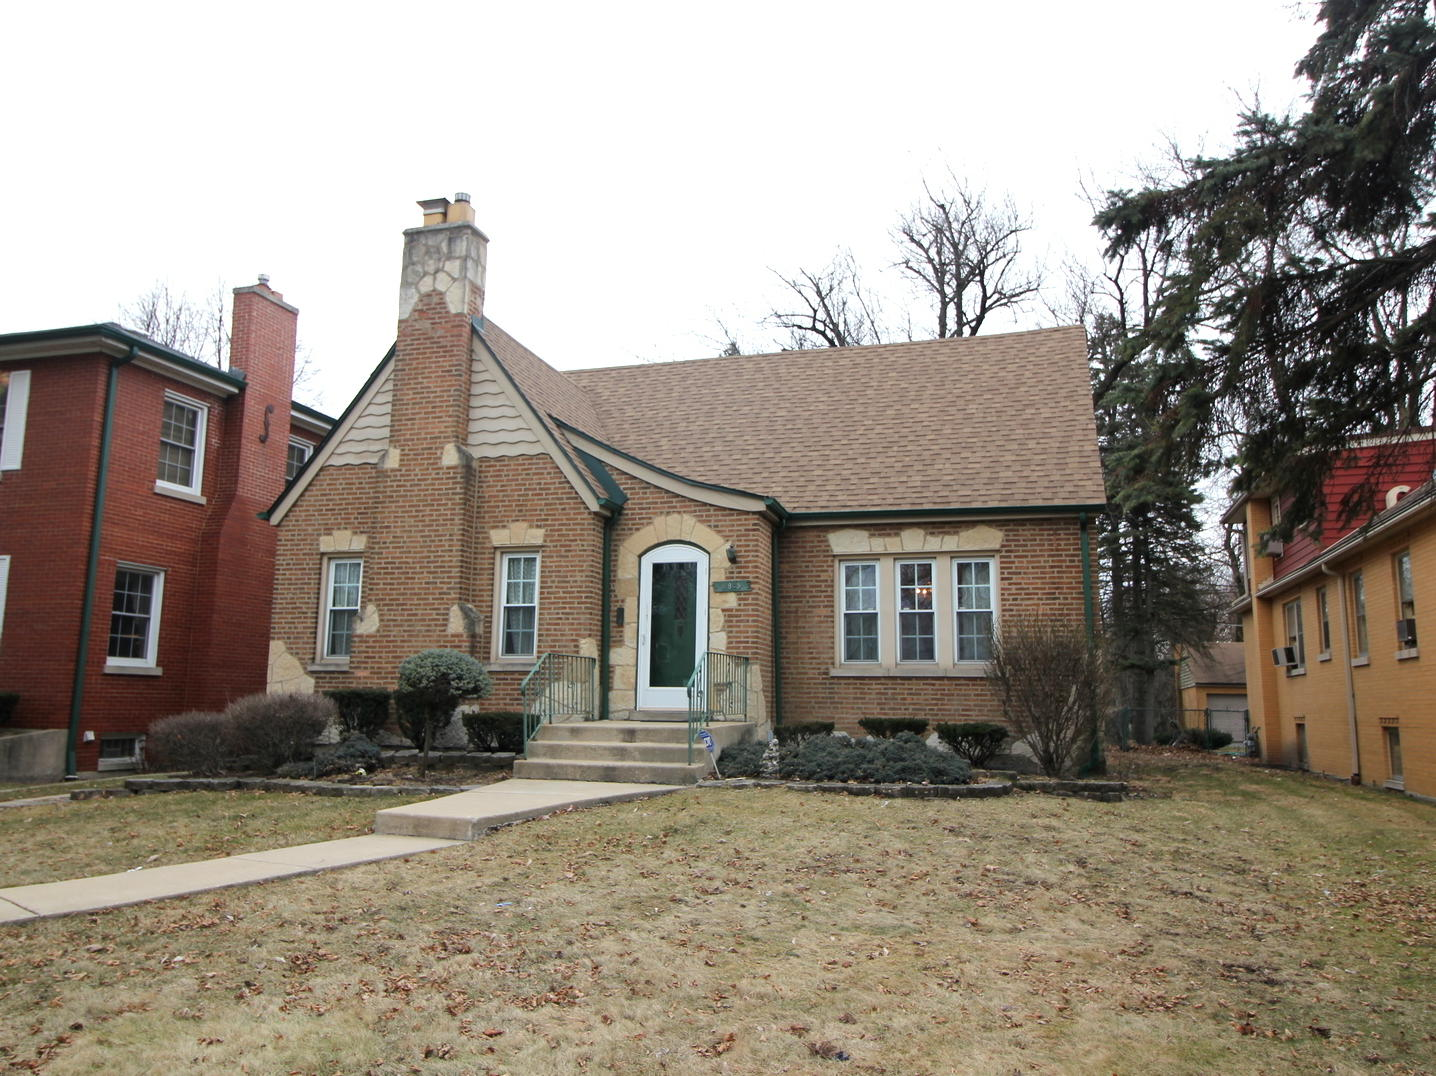 Photo of 11845 Oakley Chicago IL 60643